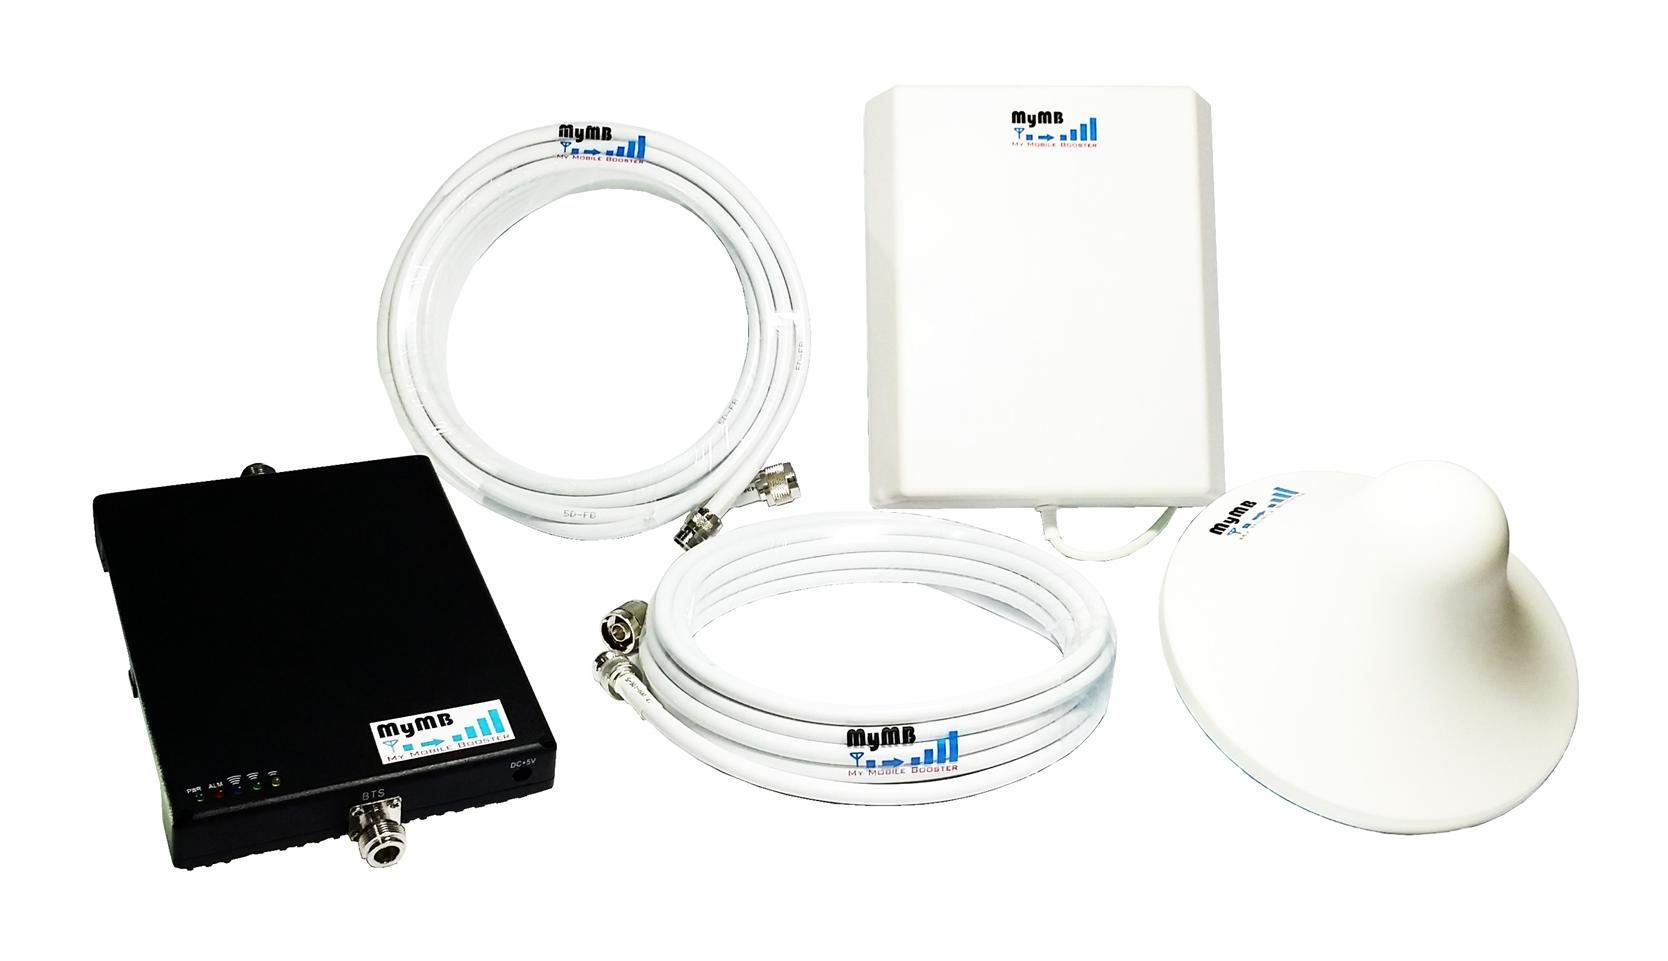 GSM 4G LTE Booster / Repeater Malaysia - Experience 2G